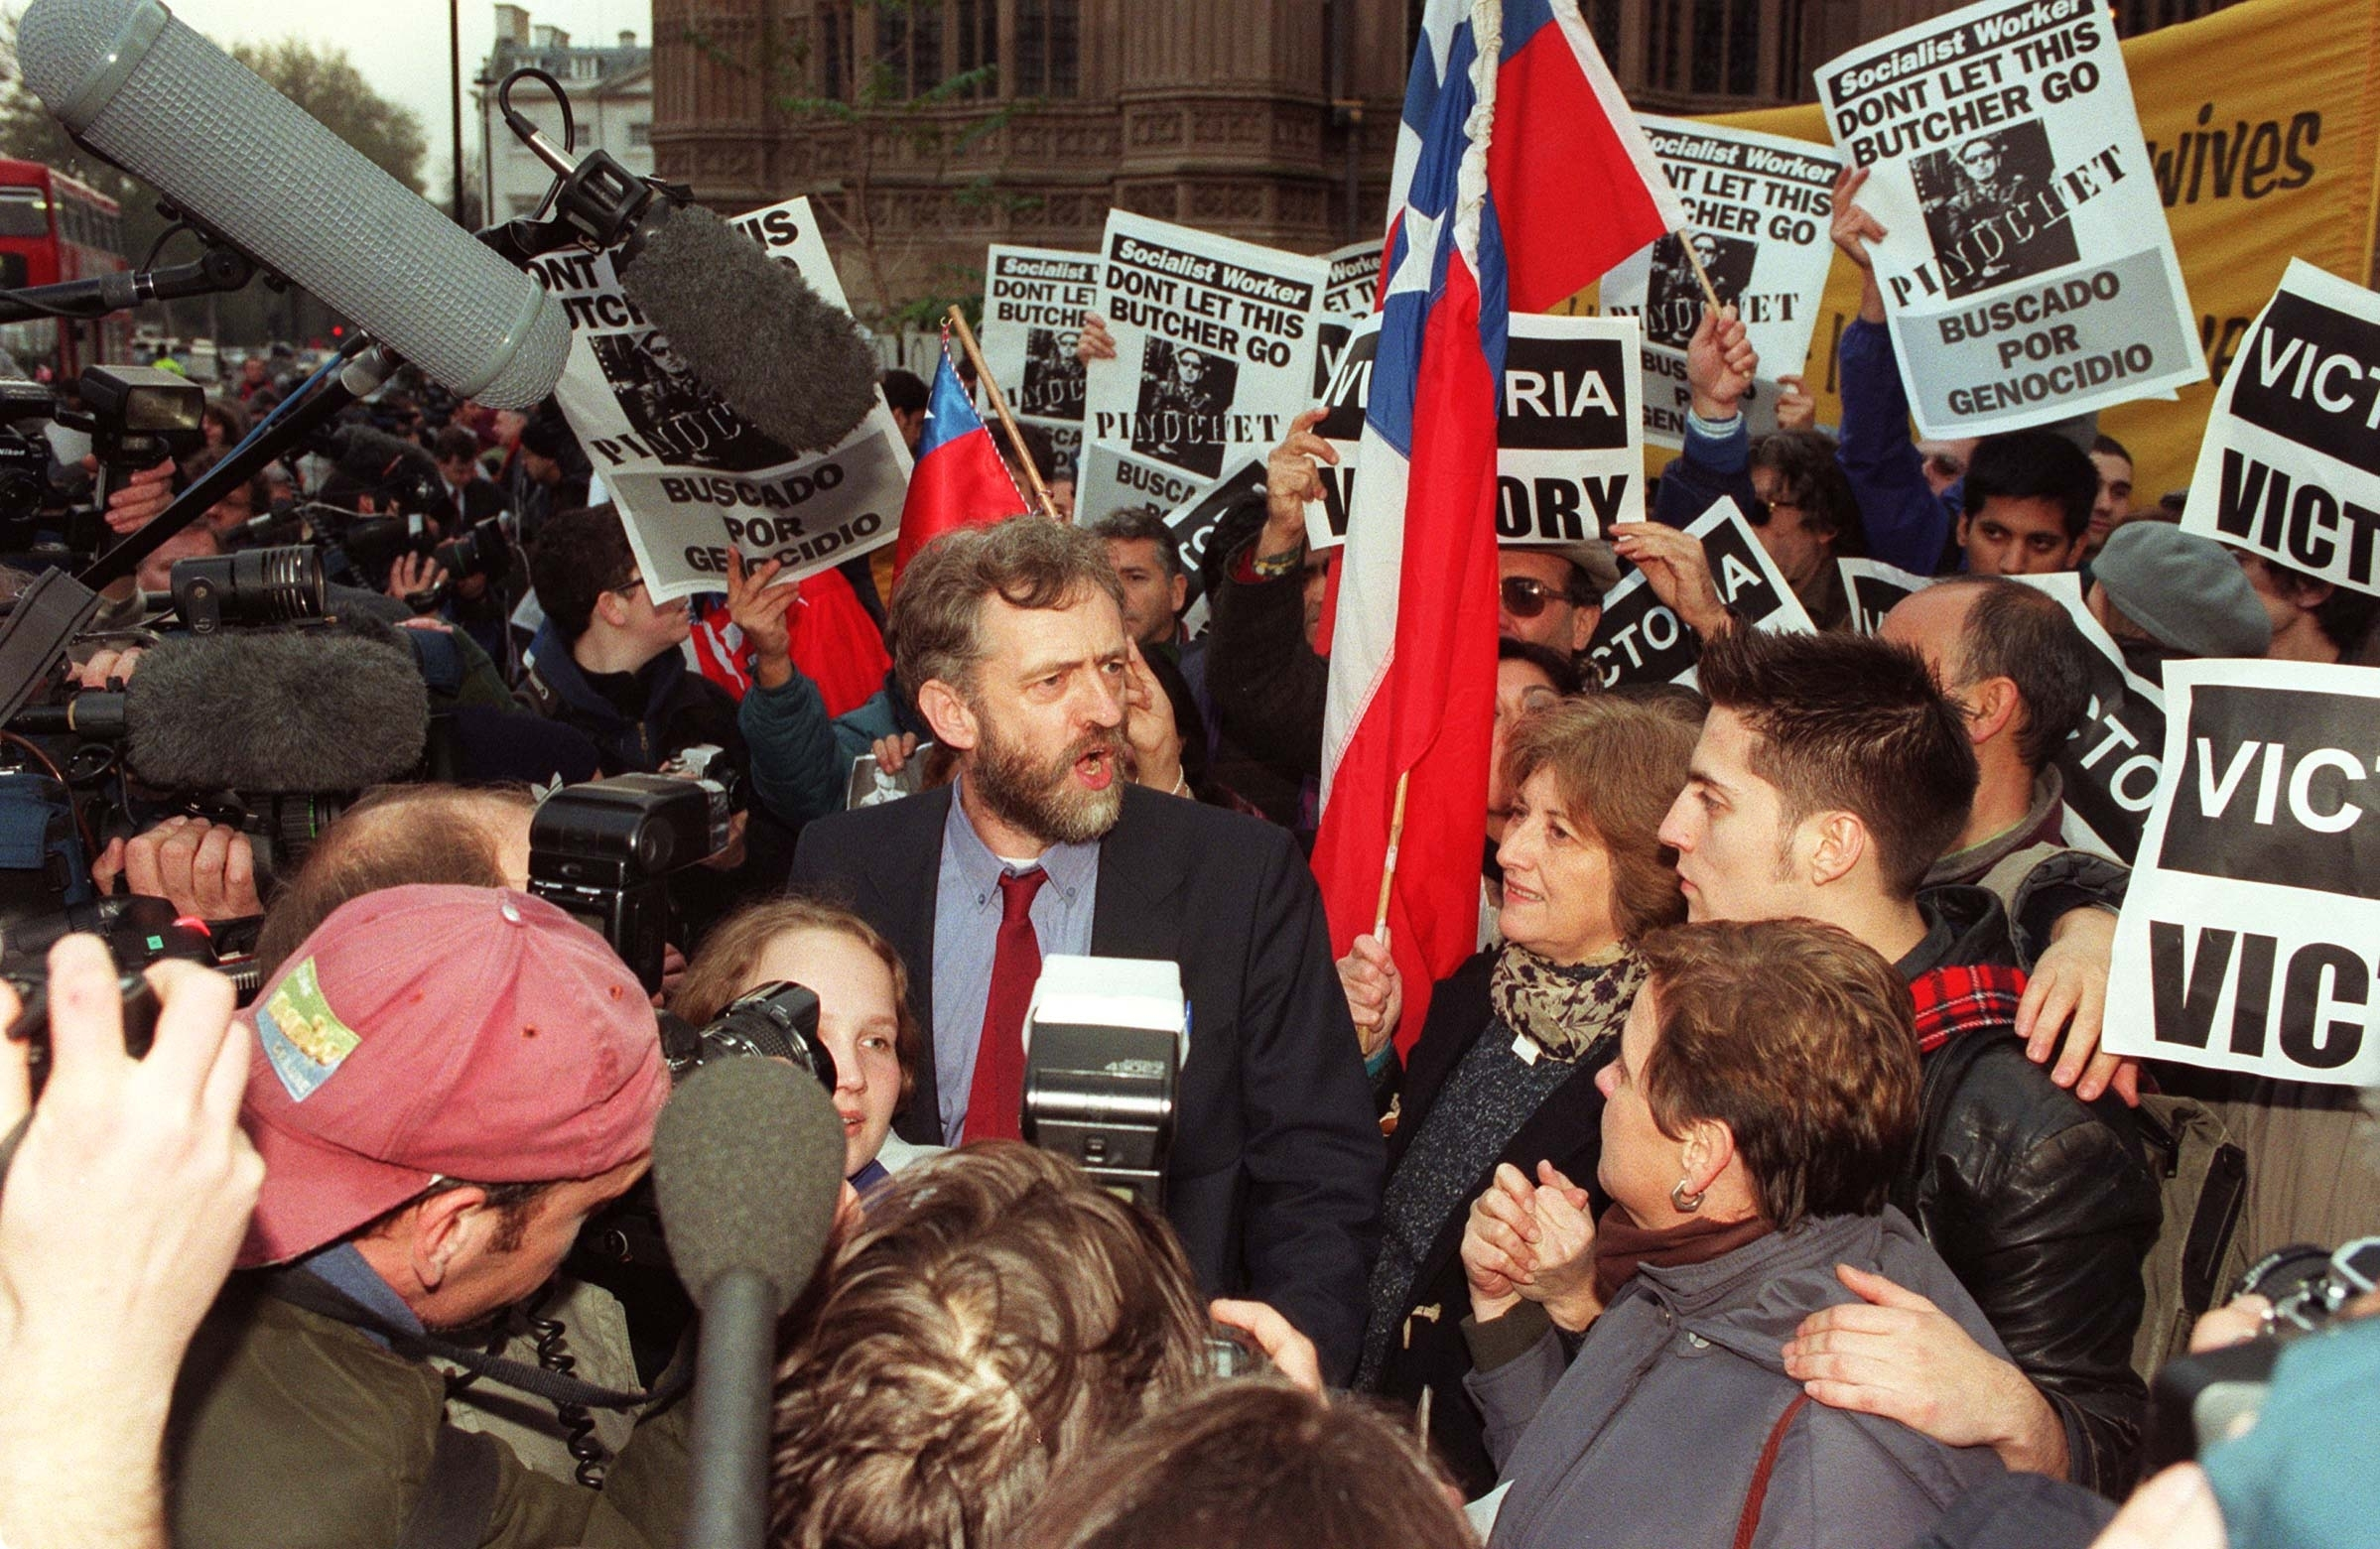 Labour MP Jeremy Corbyn speaking to journalists outside the House of Commons in London after the historic ruling by the House of Lords against the appeal of former Chilean dictator Gen. Augusto Pinochet. FACT 2: He was arrested at the South African Embassy in 1984 for protesting against apartheid.